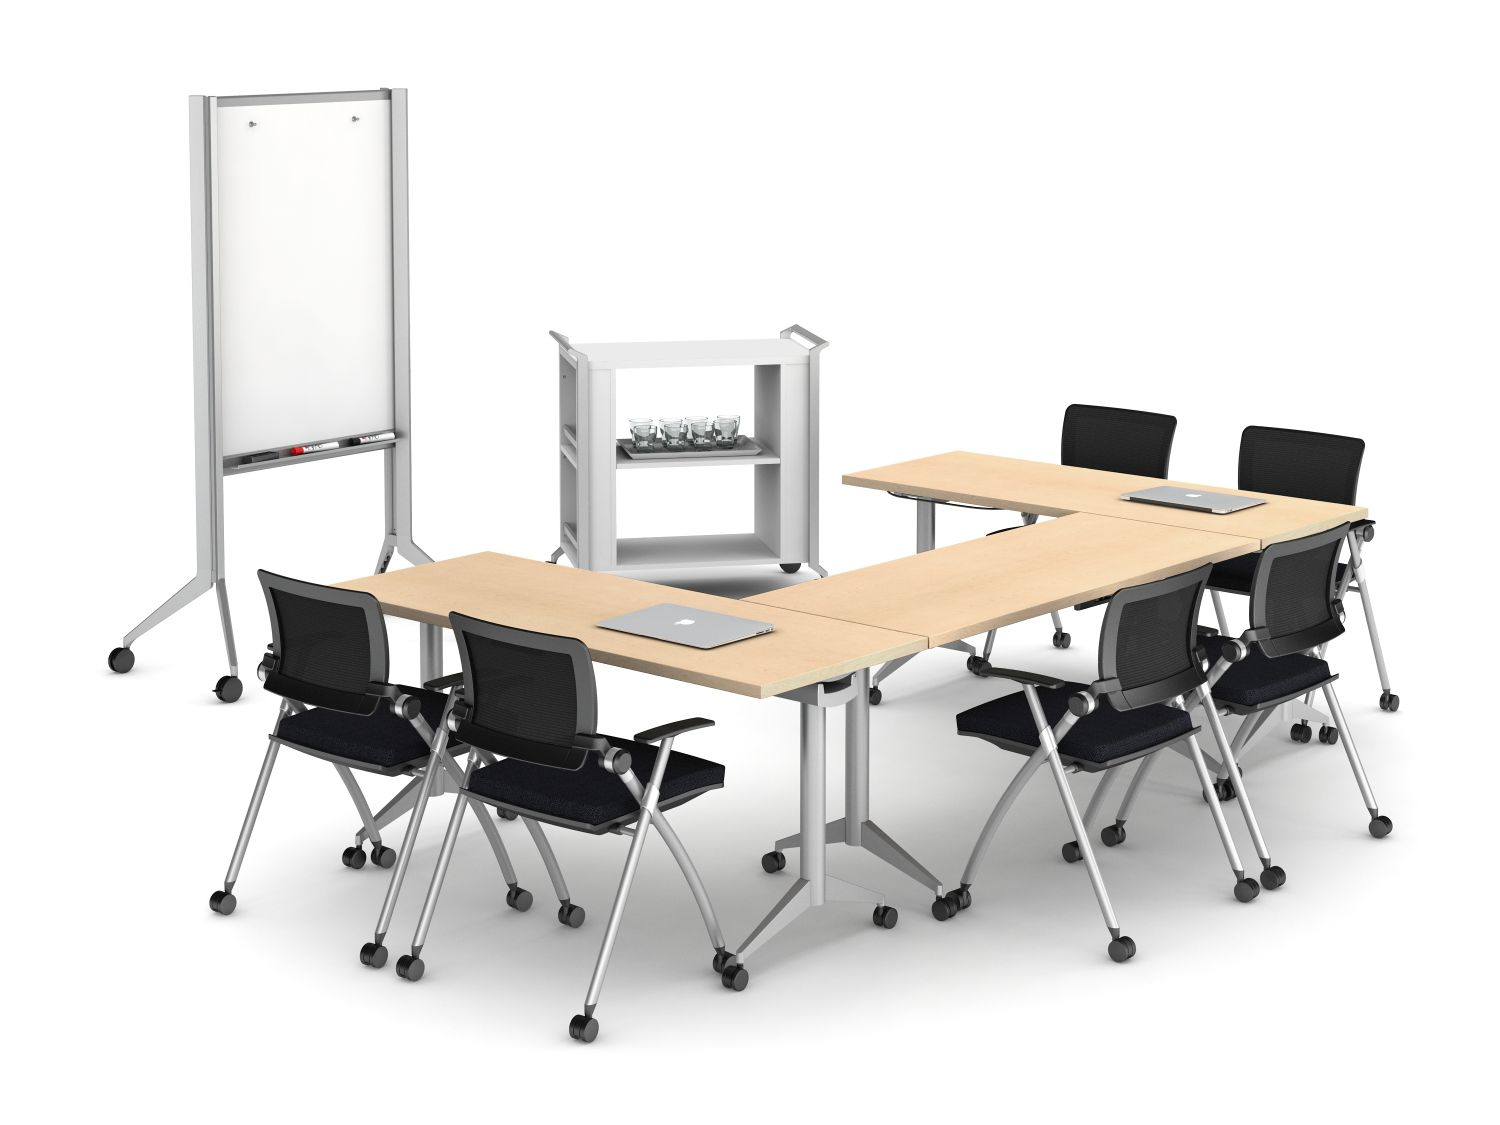 day-to-day-tables-with-aluminum-t-legs-stow-seating-hospitality-cart-and-mobile-whiteboard_md